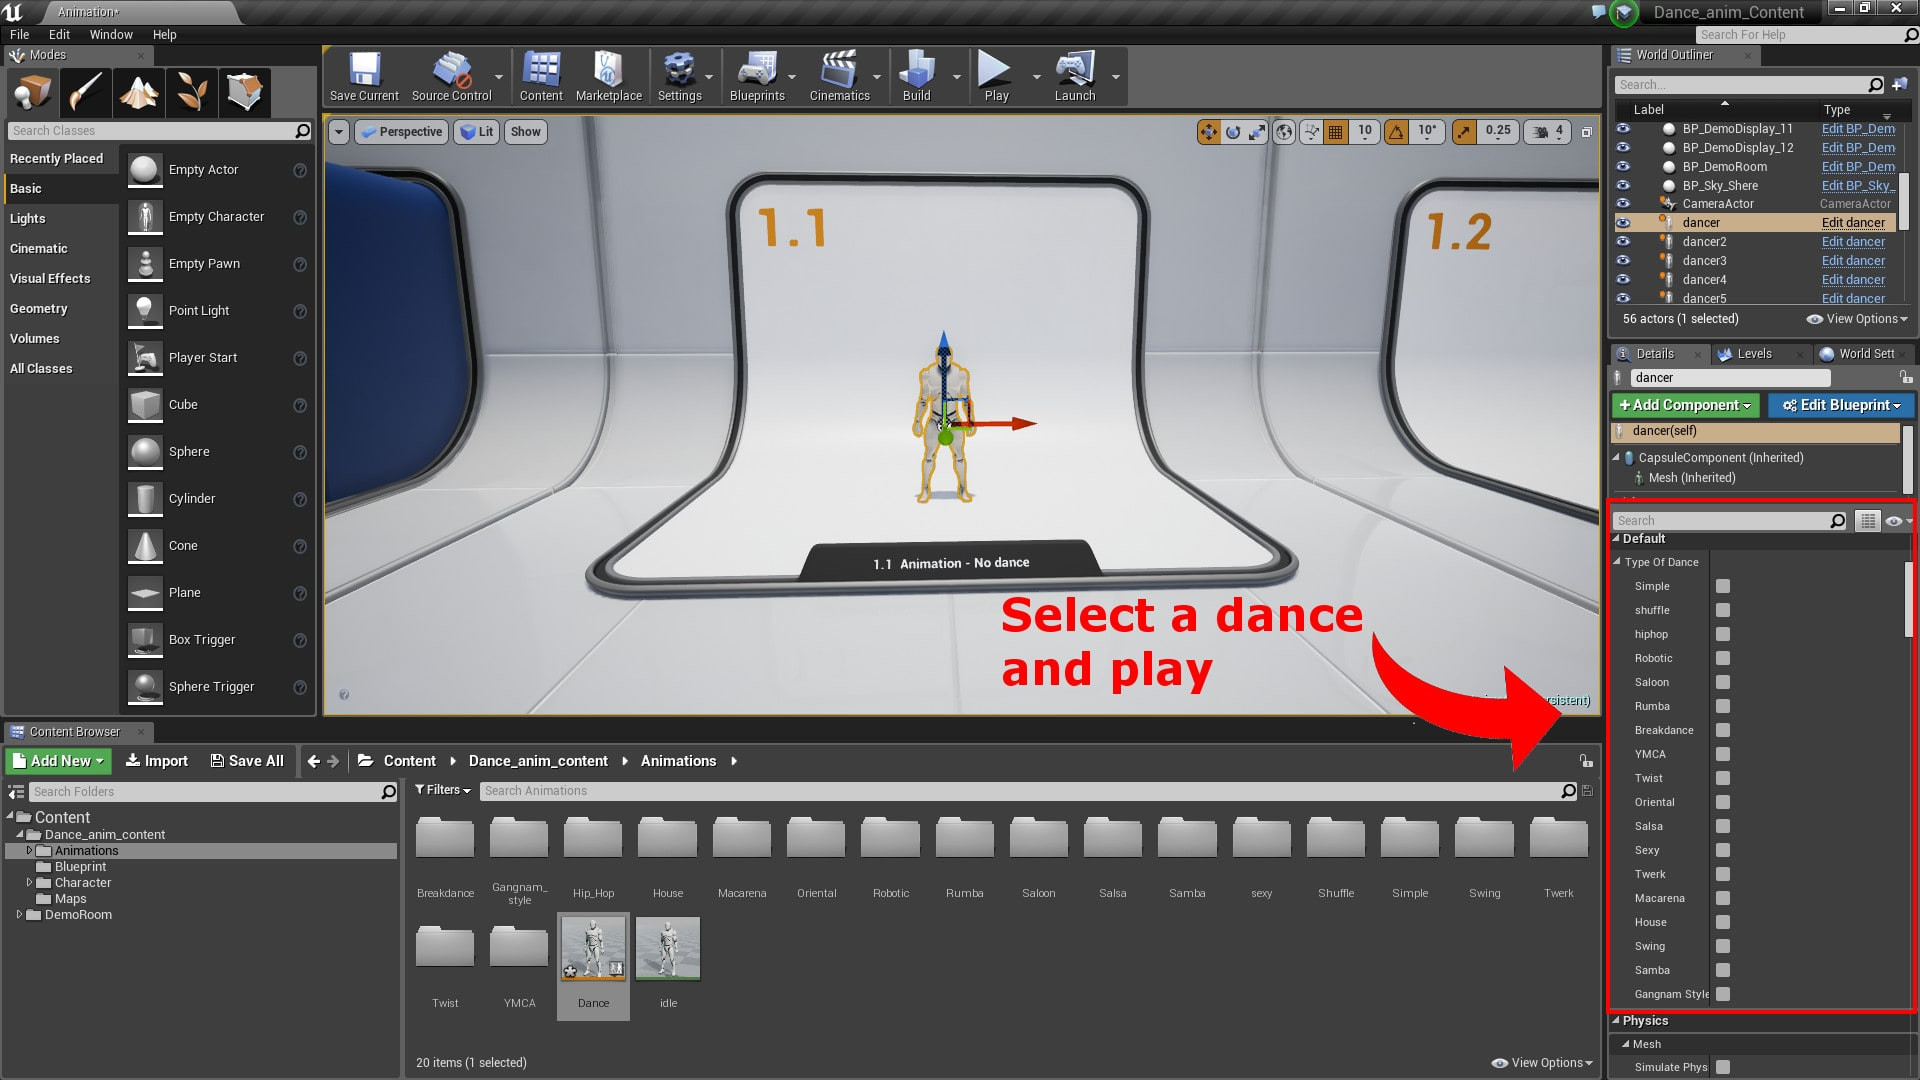 Dances animations pack by terribilis studio in animations ue4 share malvernweather Image collections